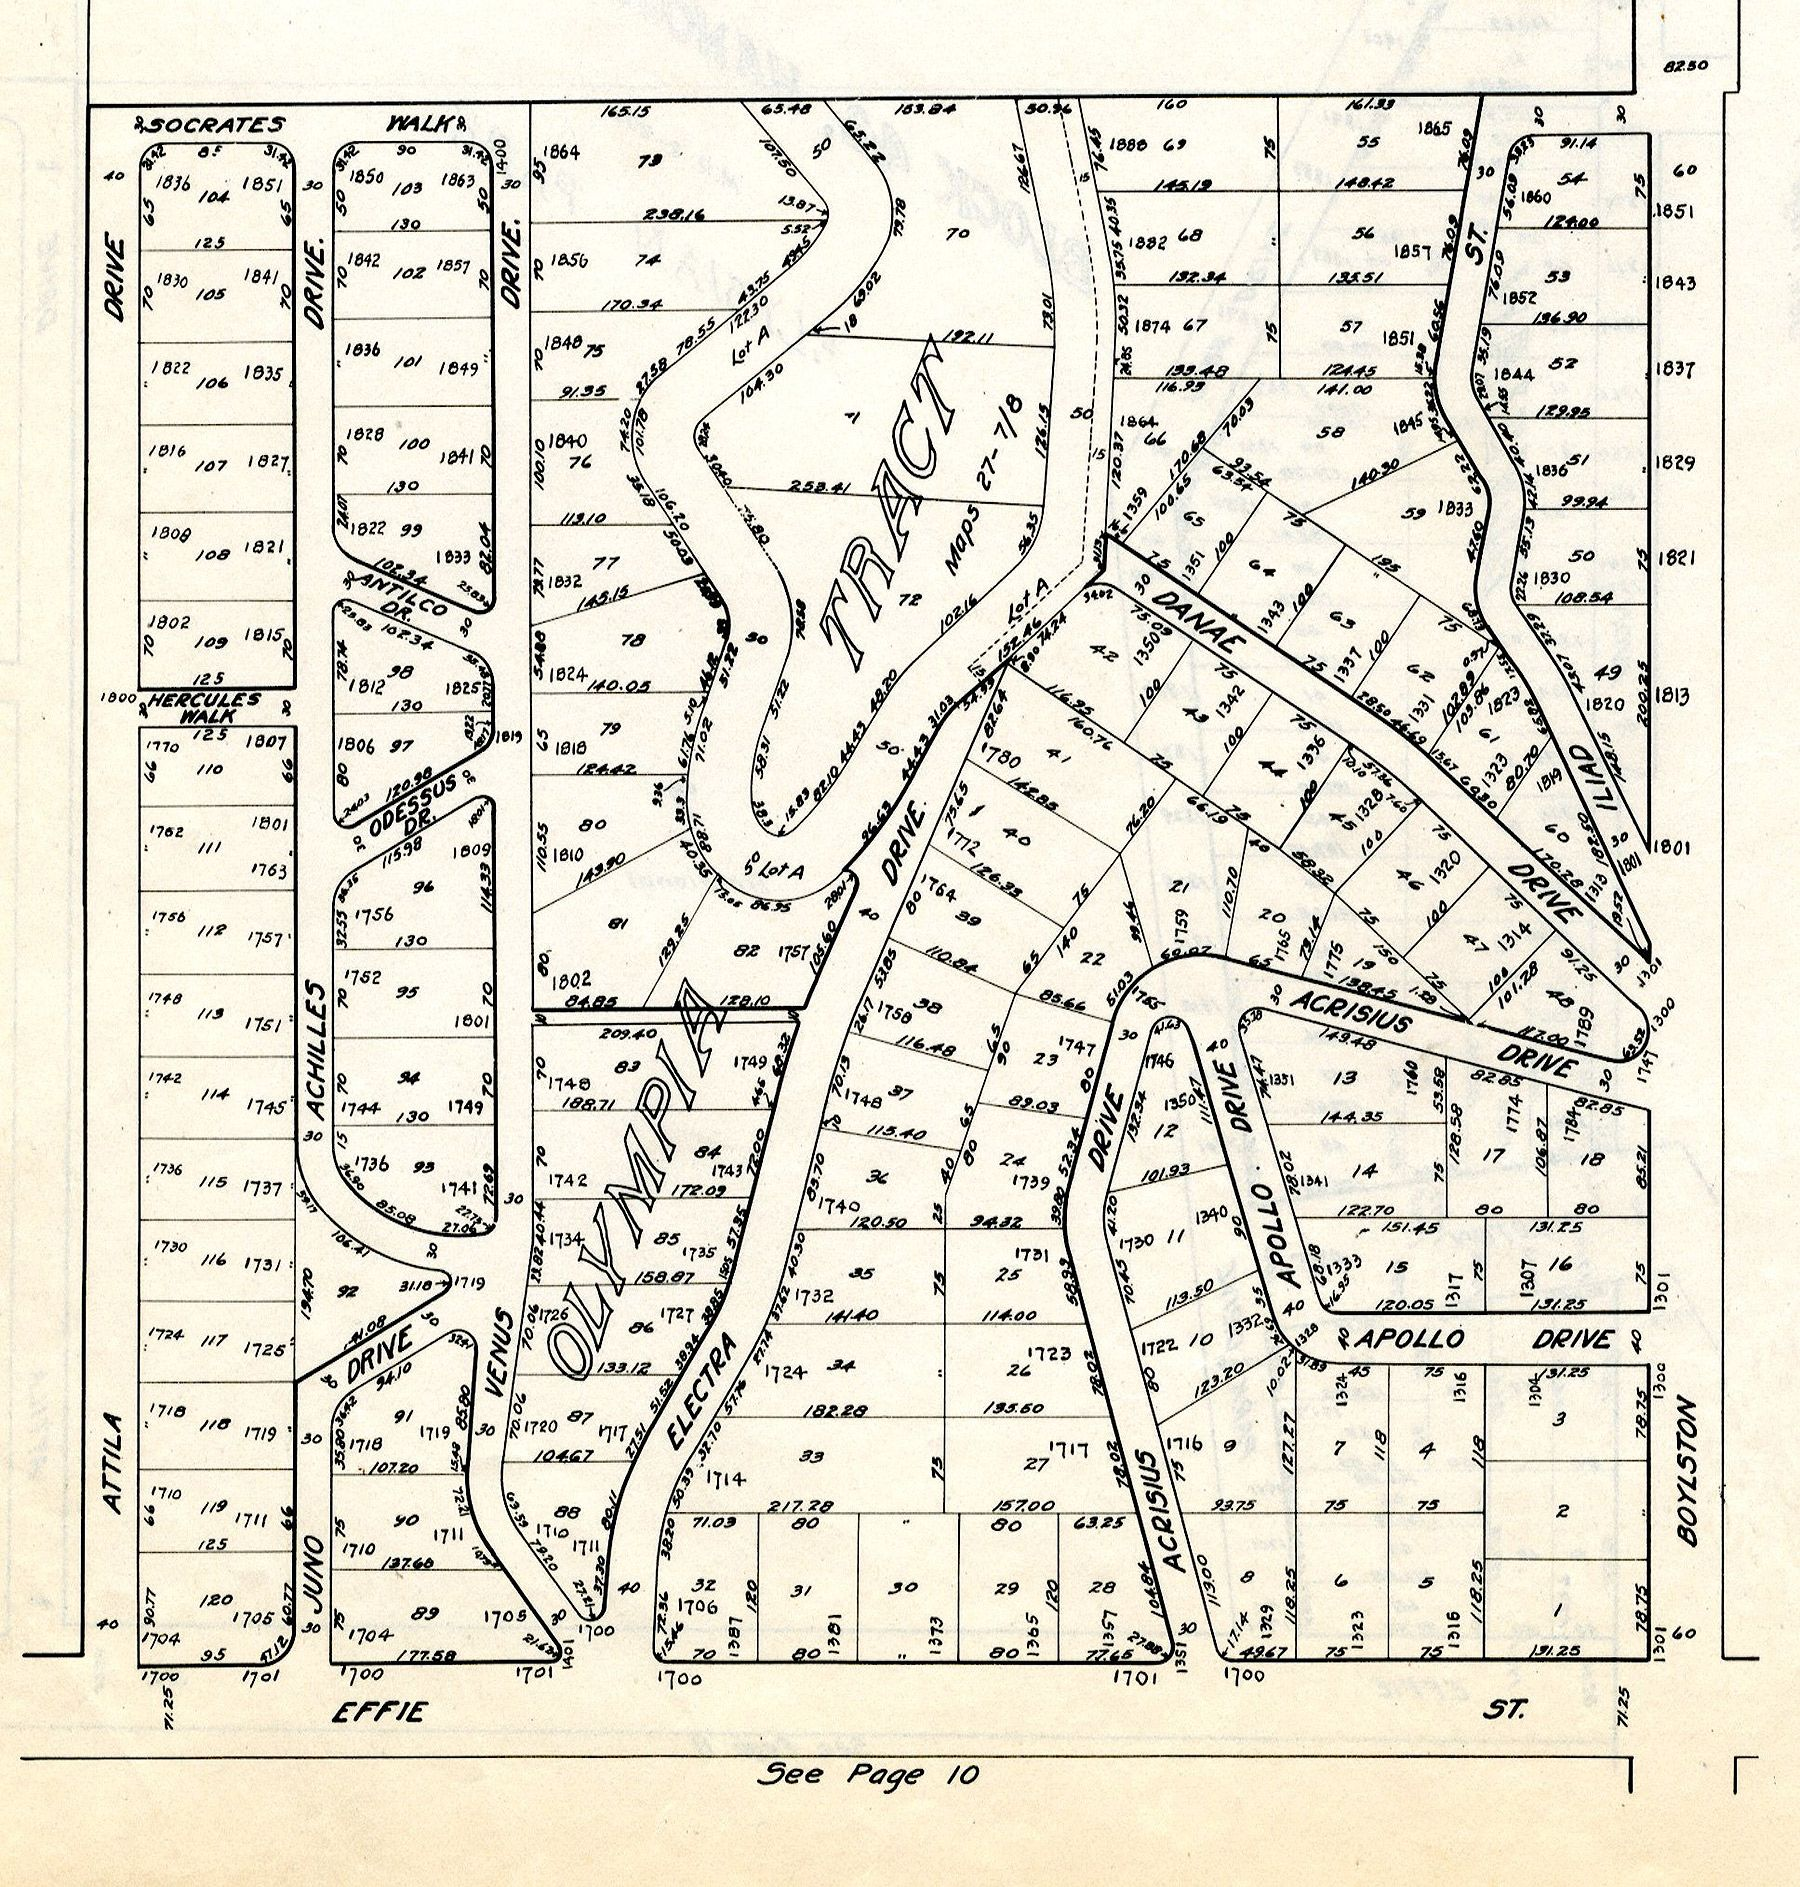 Property Book Of Los Angeles City Los Angeles Map And Address Co Published By The T V Allen Co 1917 Los Angeles Map History Street Names